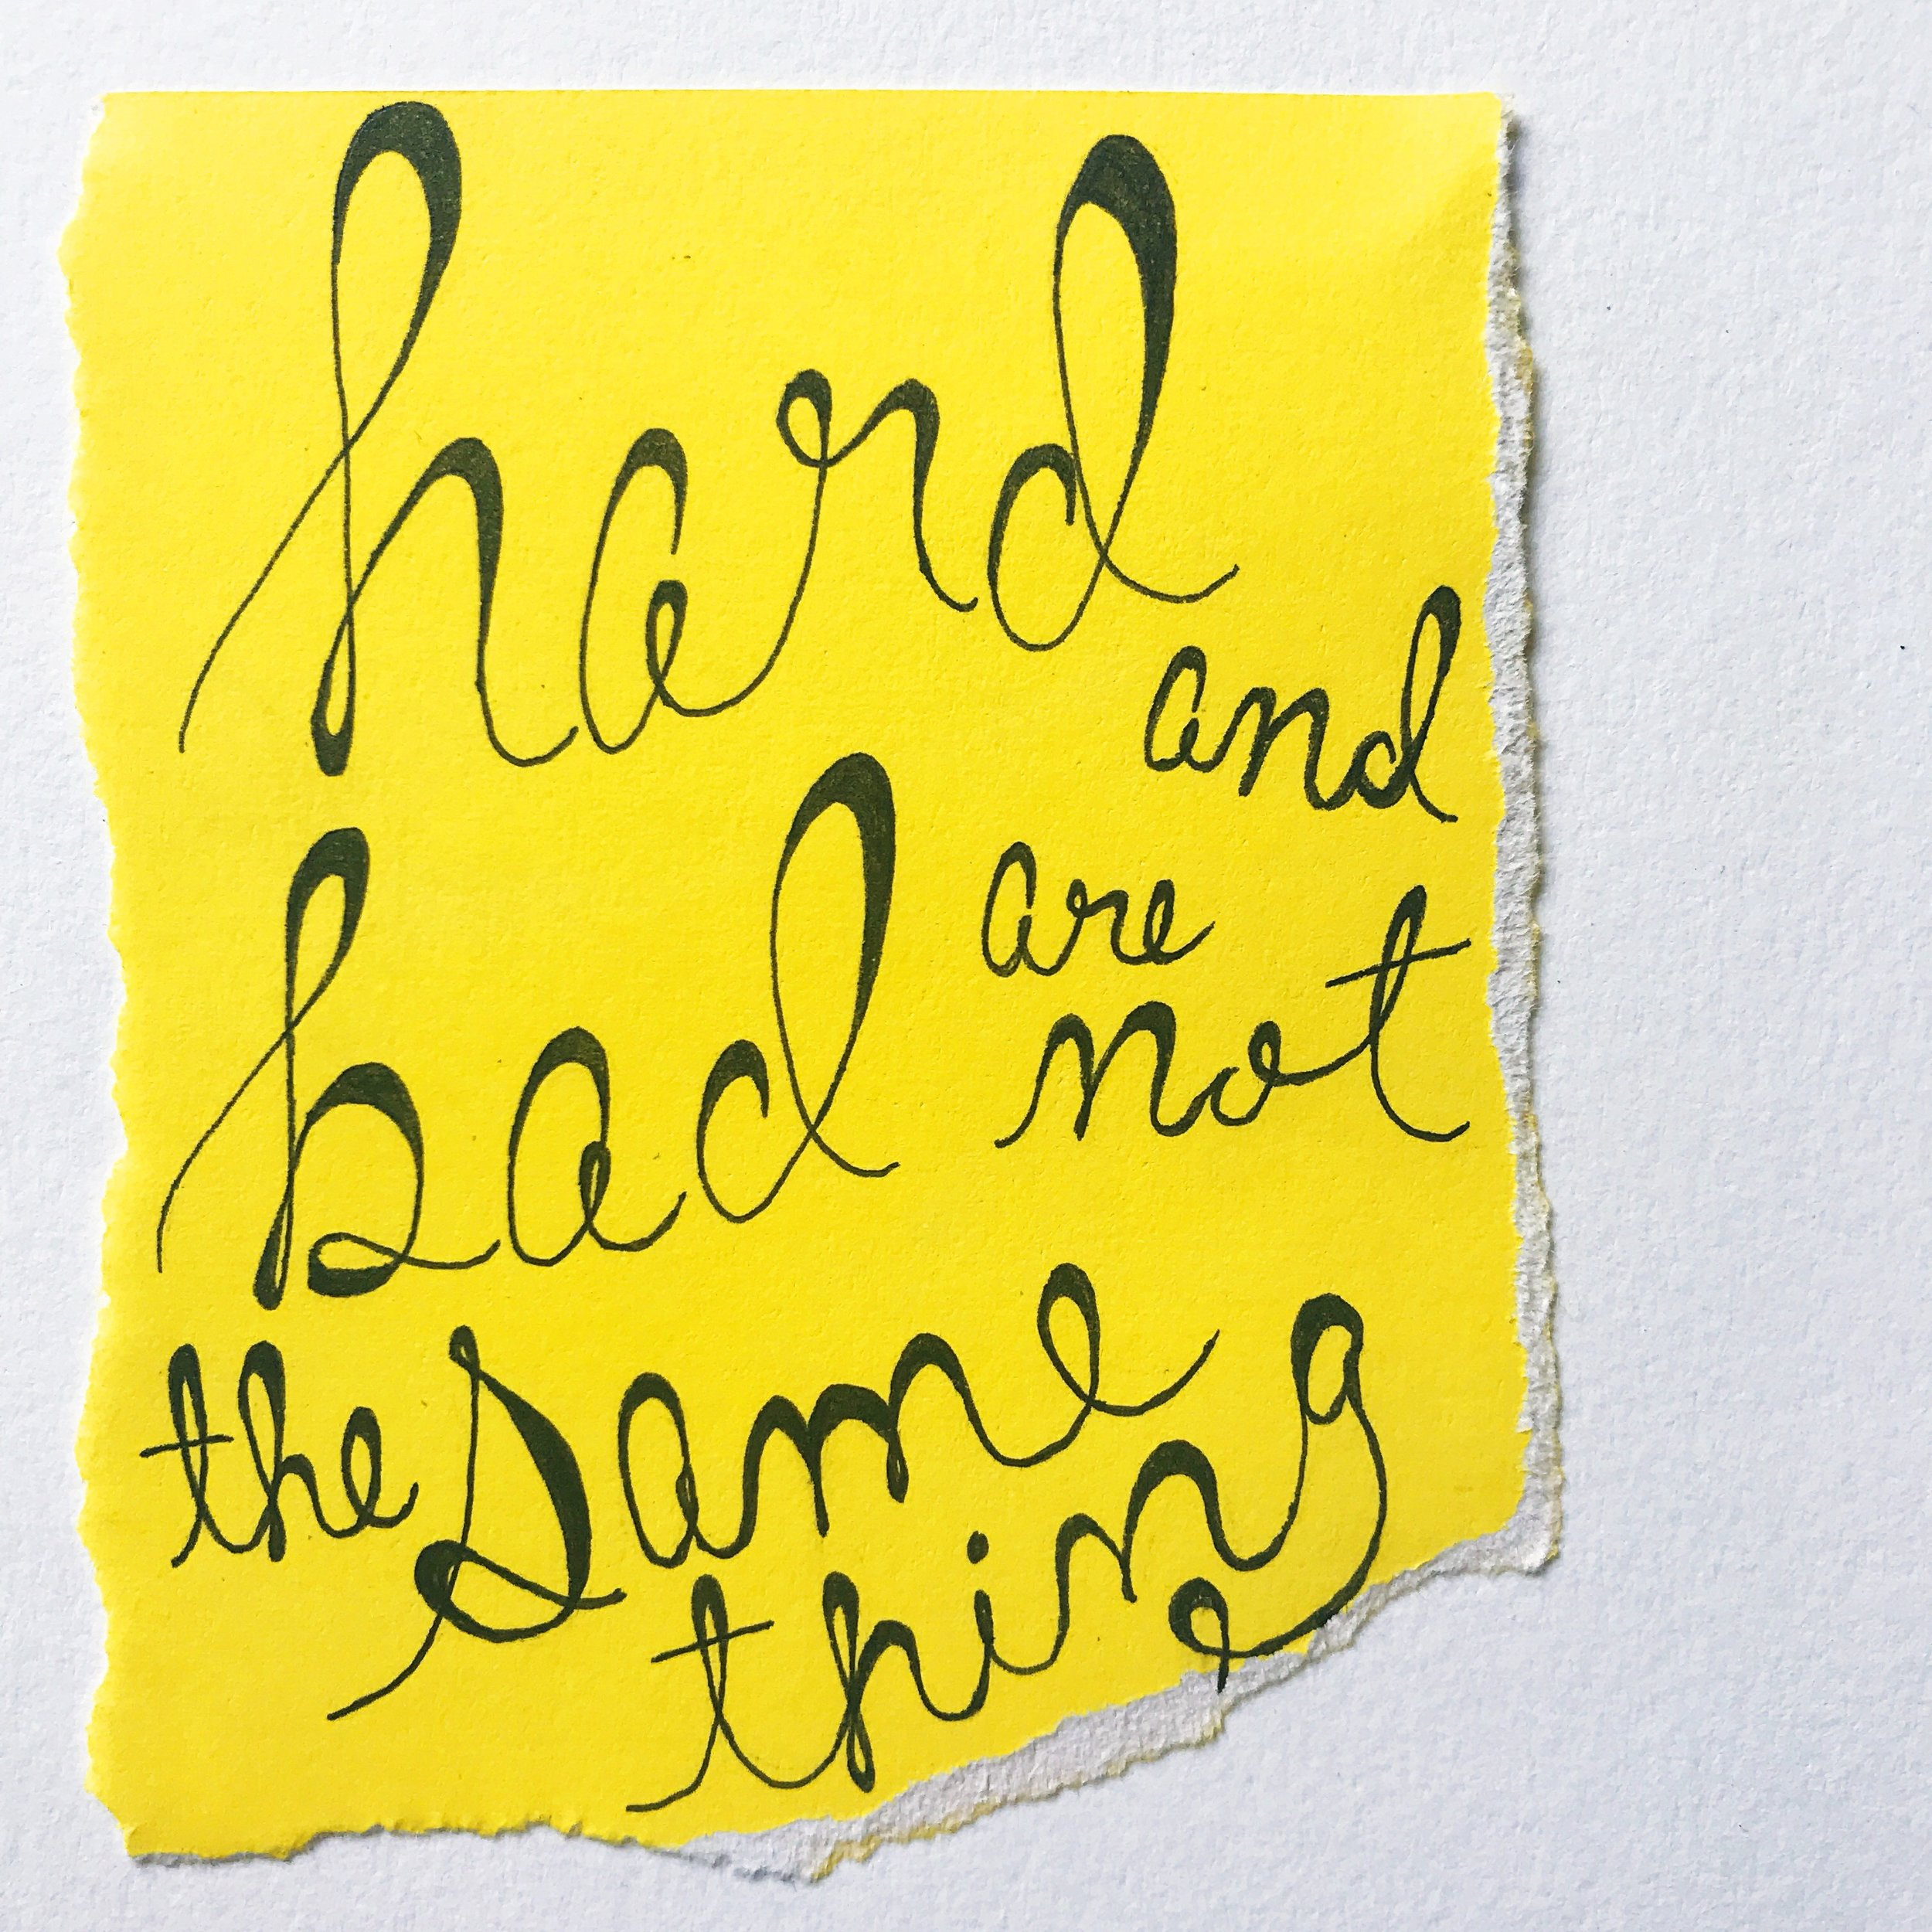 Life is hard, not bad. Hard and bad are not the same thing // 100 Days of Things You Need To Hear at the Find/Fix/Make/Mend blog. // 100 Days of Upcycled Home Decor, 100 Days of Things You Need To Hear // Upcycling, Repurposing, and Growing + Creative Motivation, Inspiration, and Support <3 // #The100DayProject #The100DayProject2019 #100DayProject #100DayProject2019